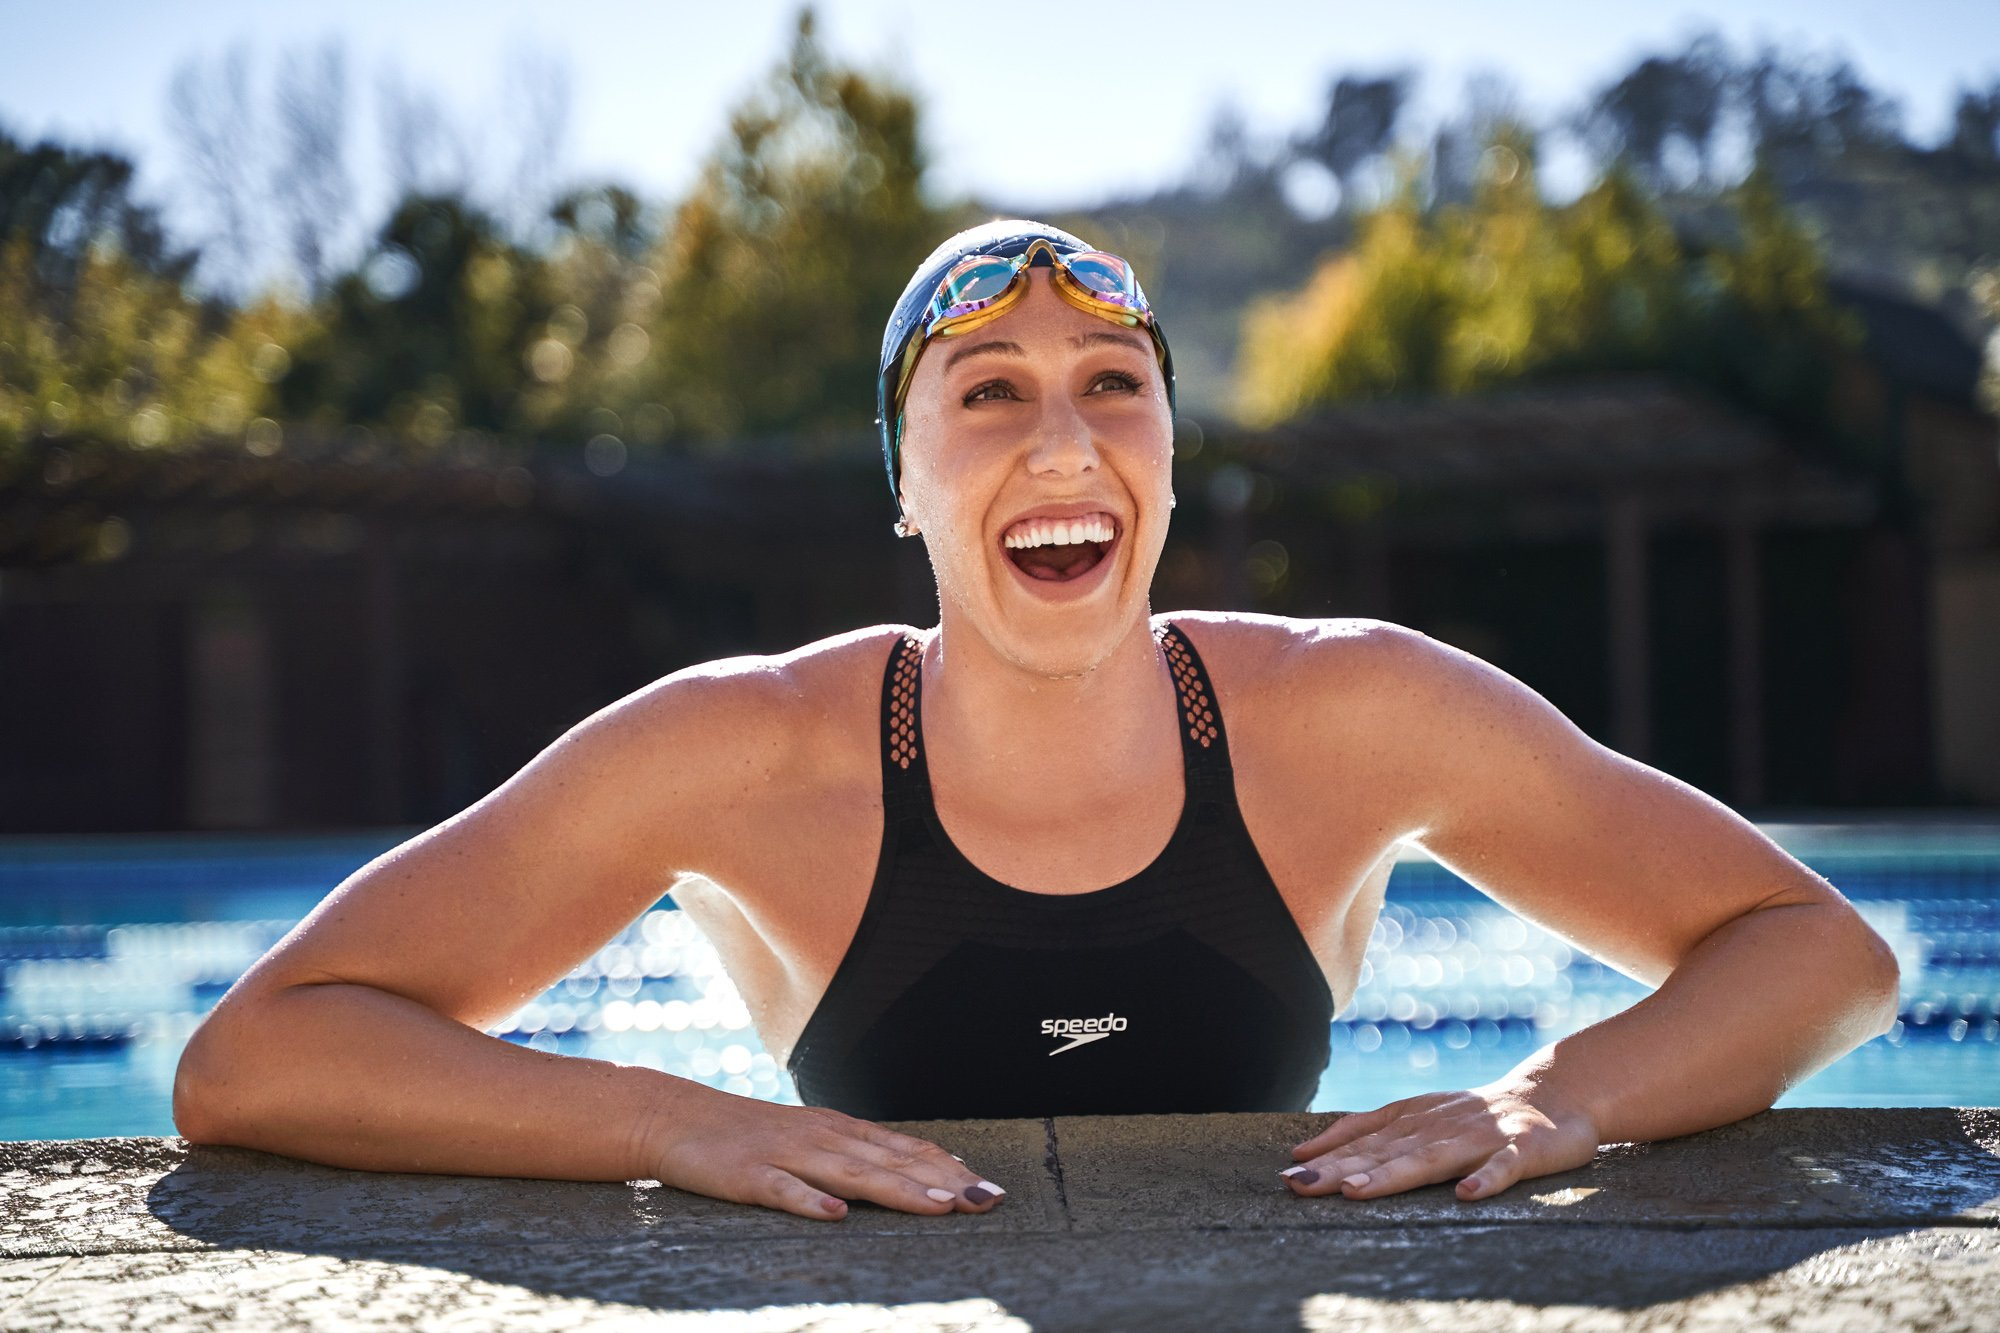 How Can I Stay Motivated When Competing at Swimming?